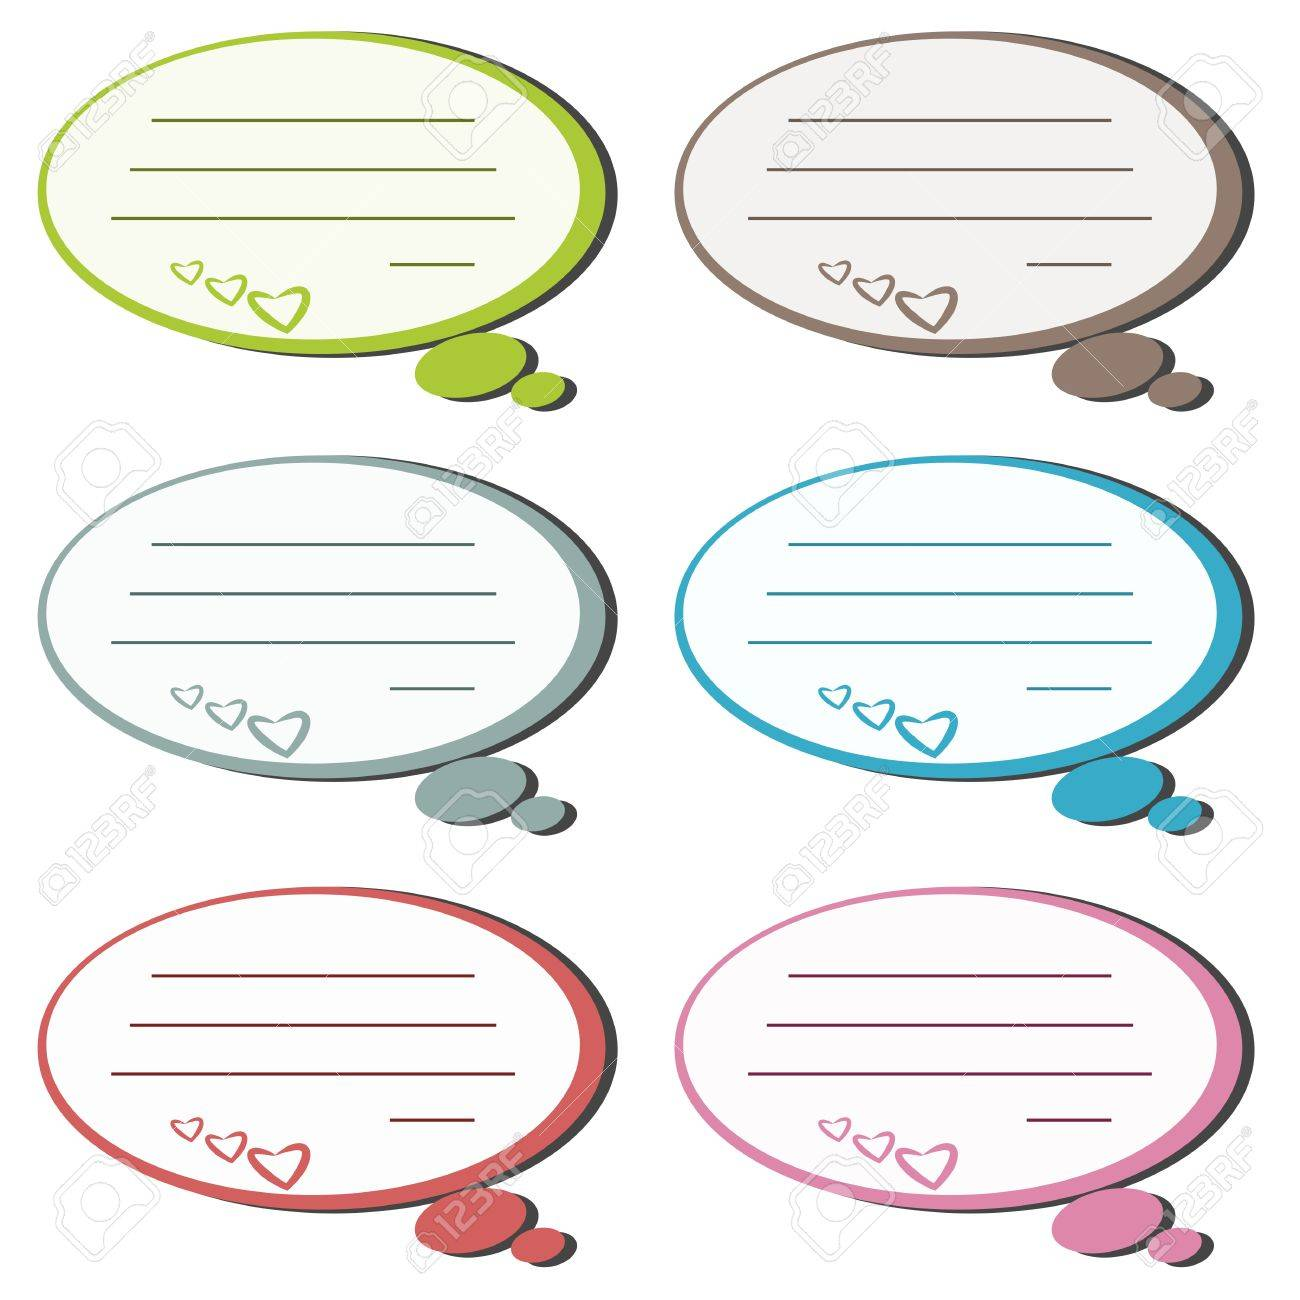 Colorful paper note or memo think concept  illustration Stock Vector - 17718855